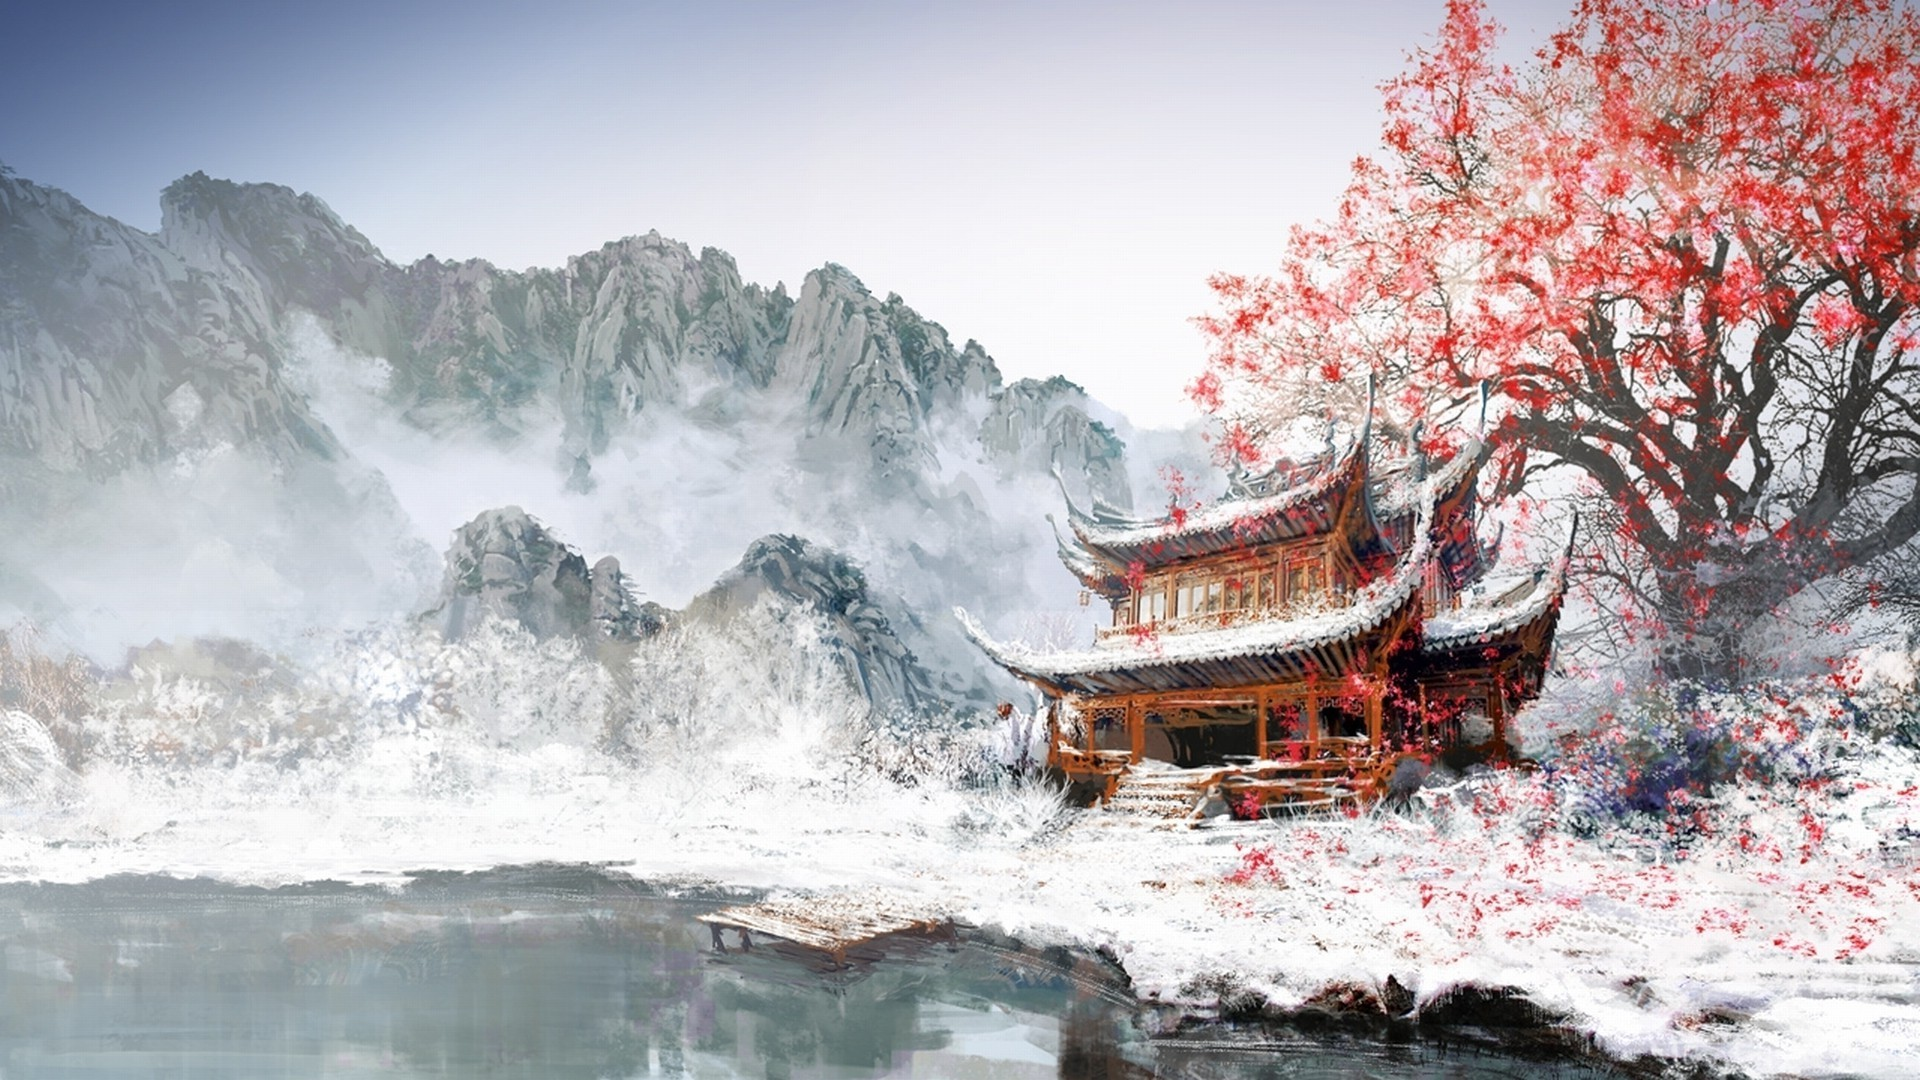 Japanese Landscape Painting Wallpaper Snowy Mountain Valley ...